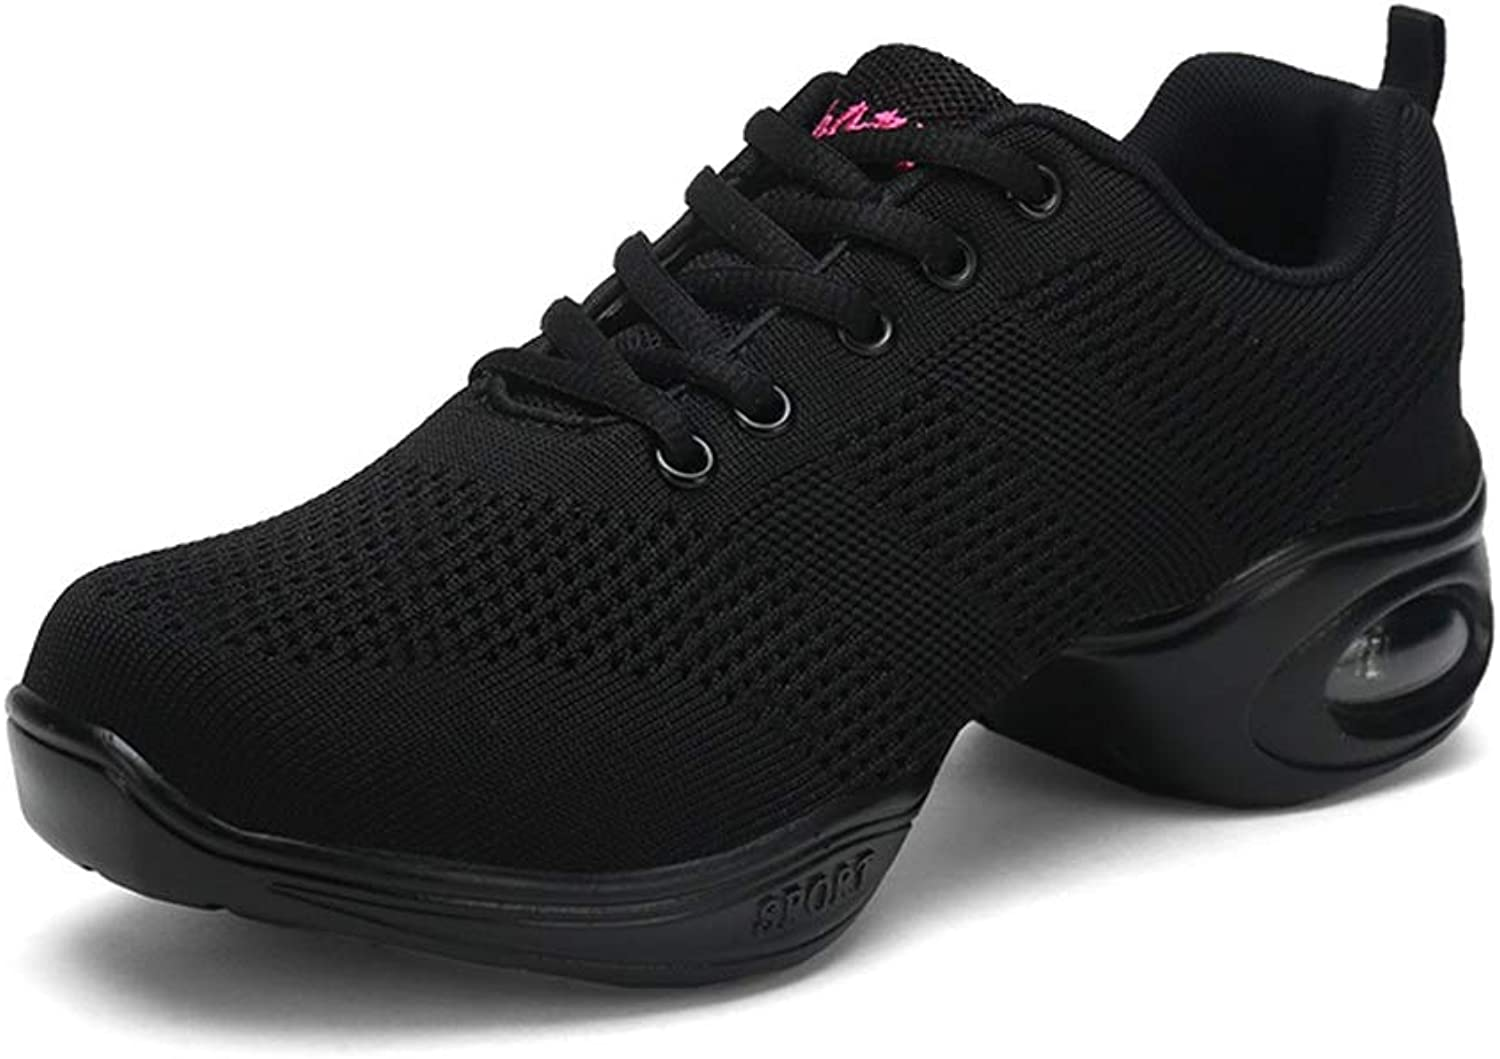 Women's Comfortable Breathable Weave Vamp Lace Up Performance Dance shoes Modern Ballroom shoes for Ladies (color   Black, Size   4.5 D(M) US)